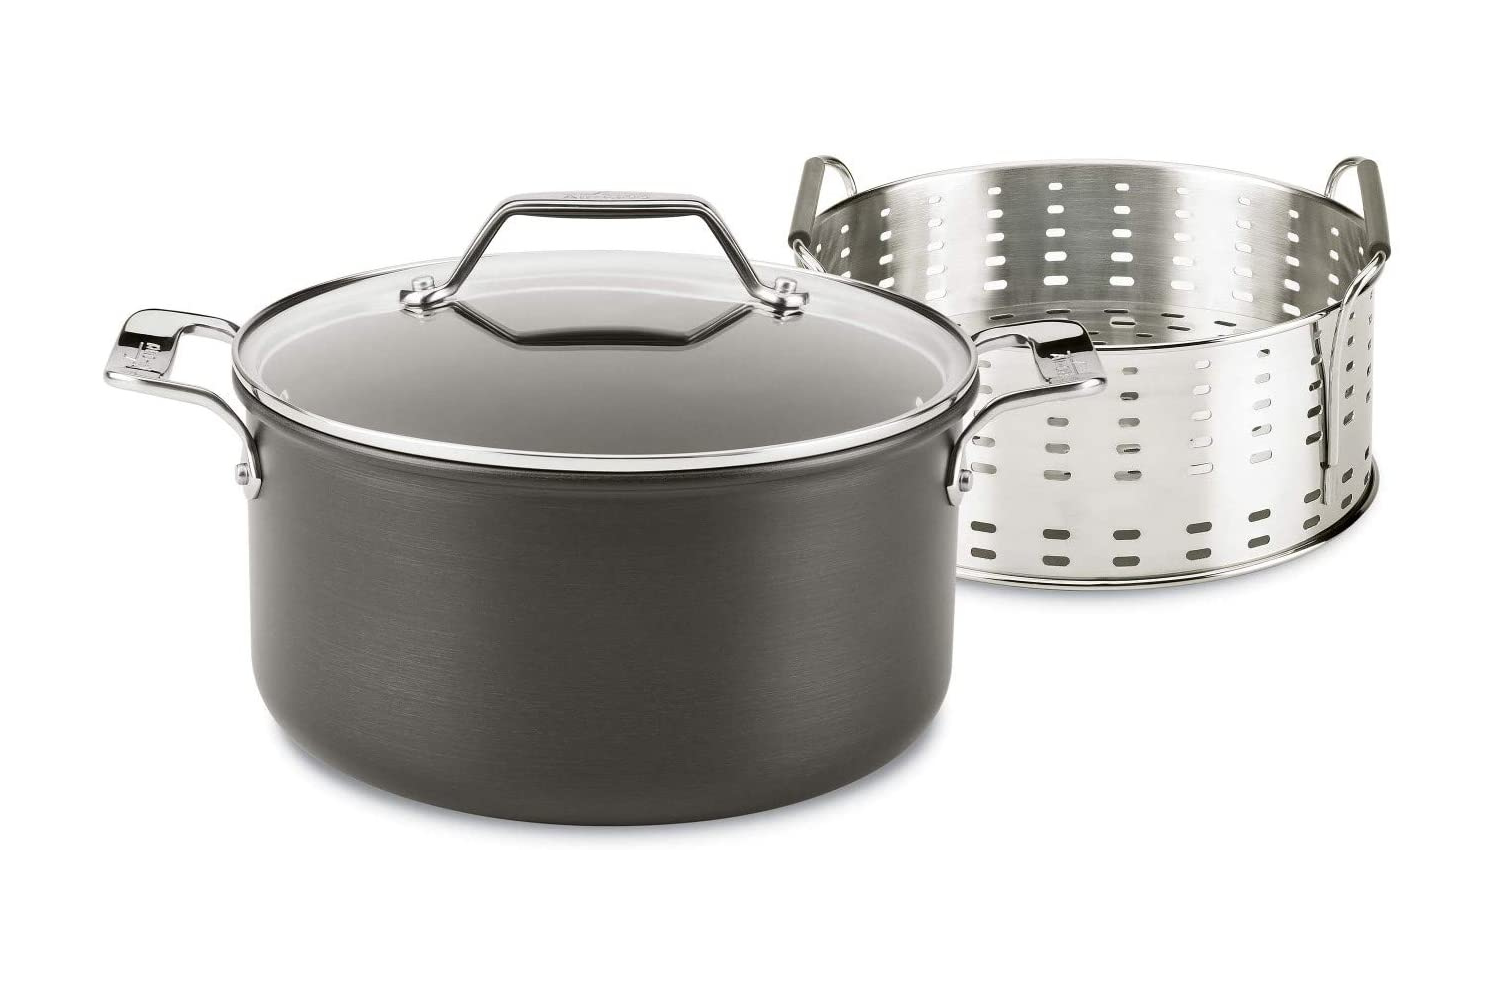 All-Clad Essentials 6-Quart Pot